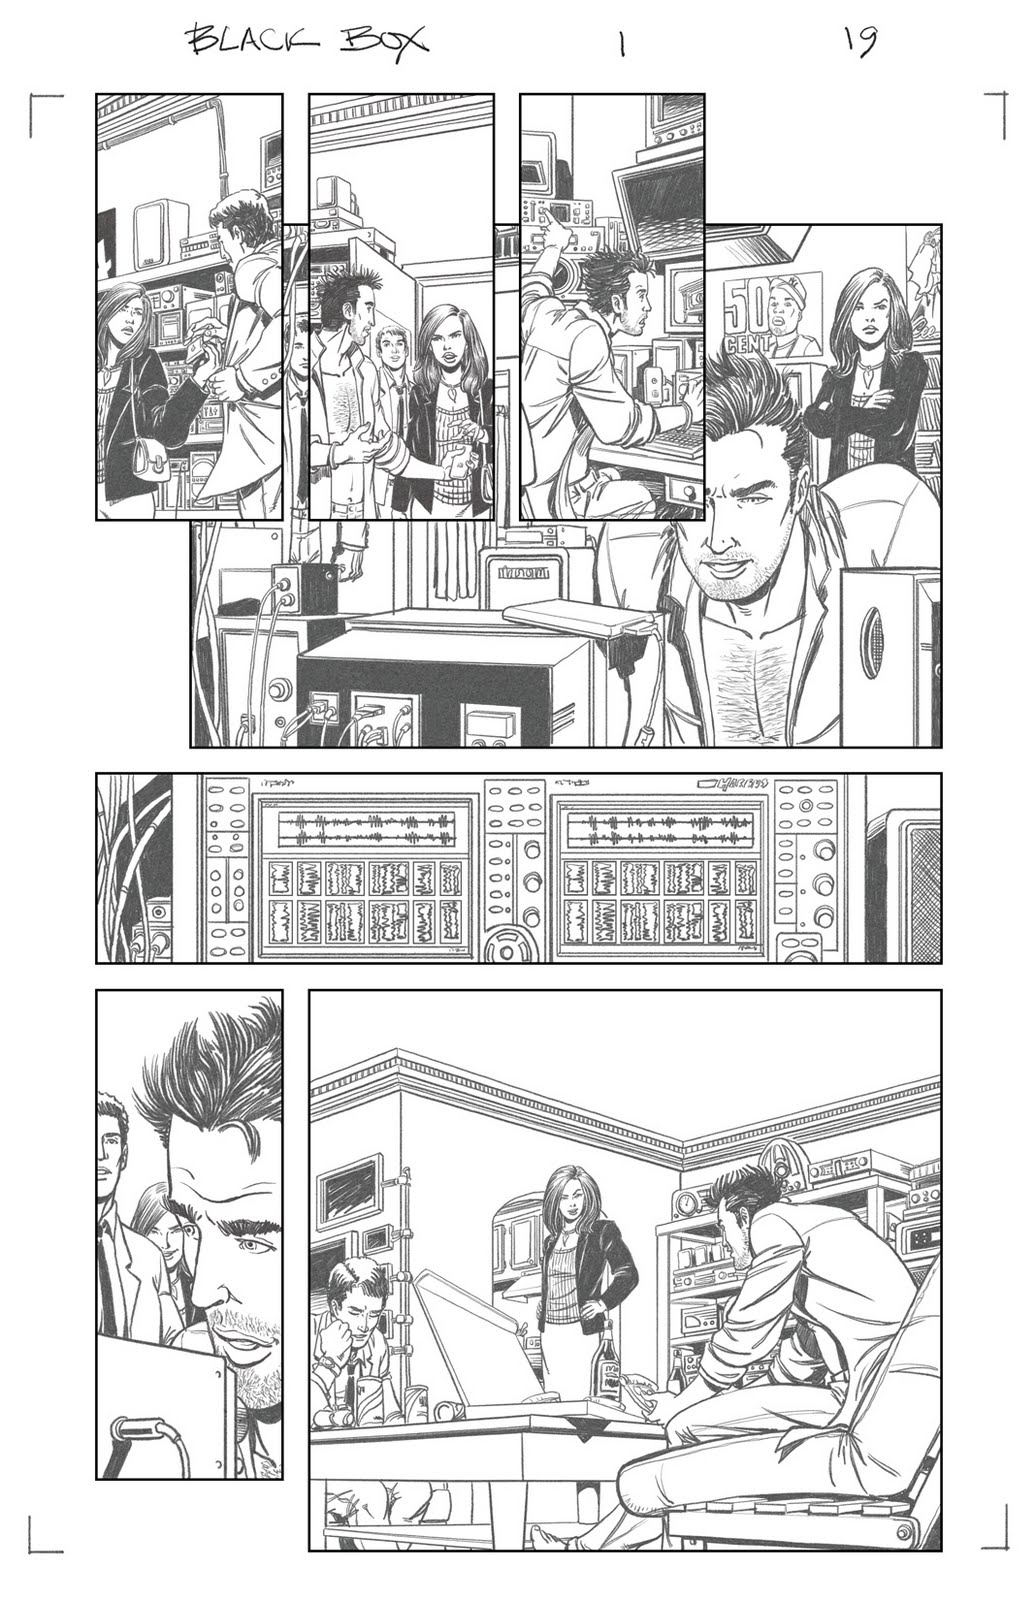 Black%2BBox_Pencils_Page%2B19